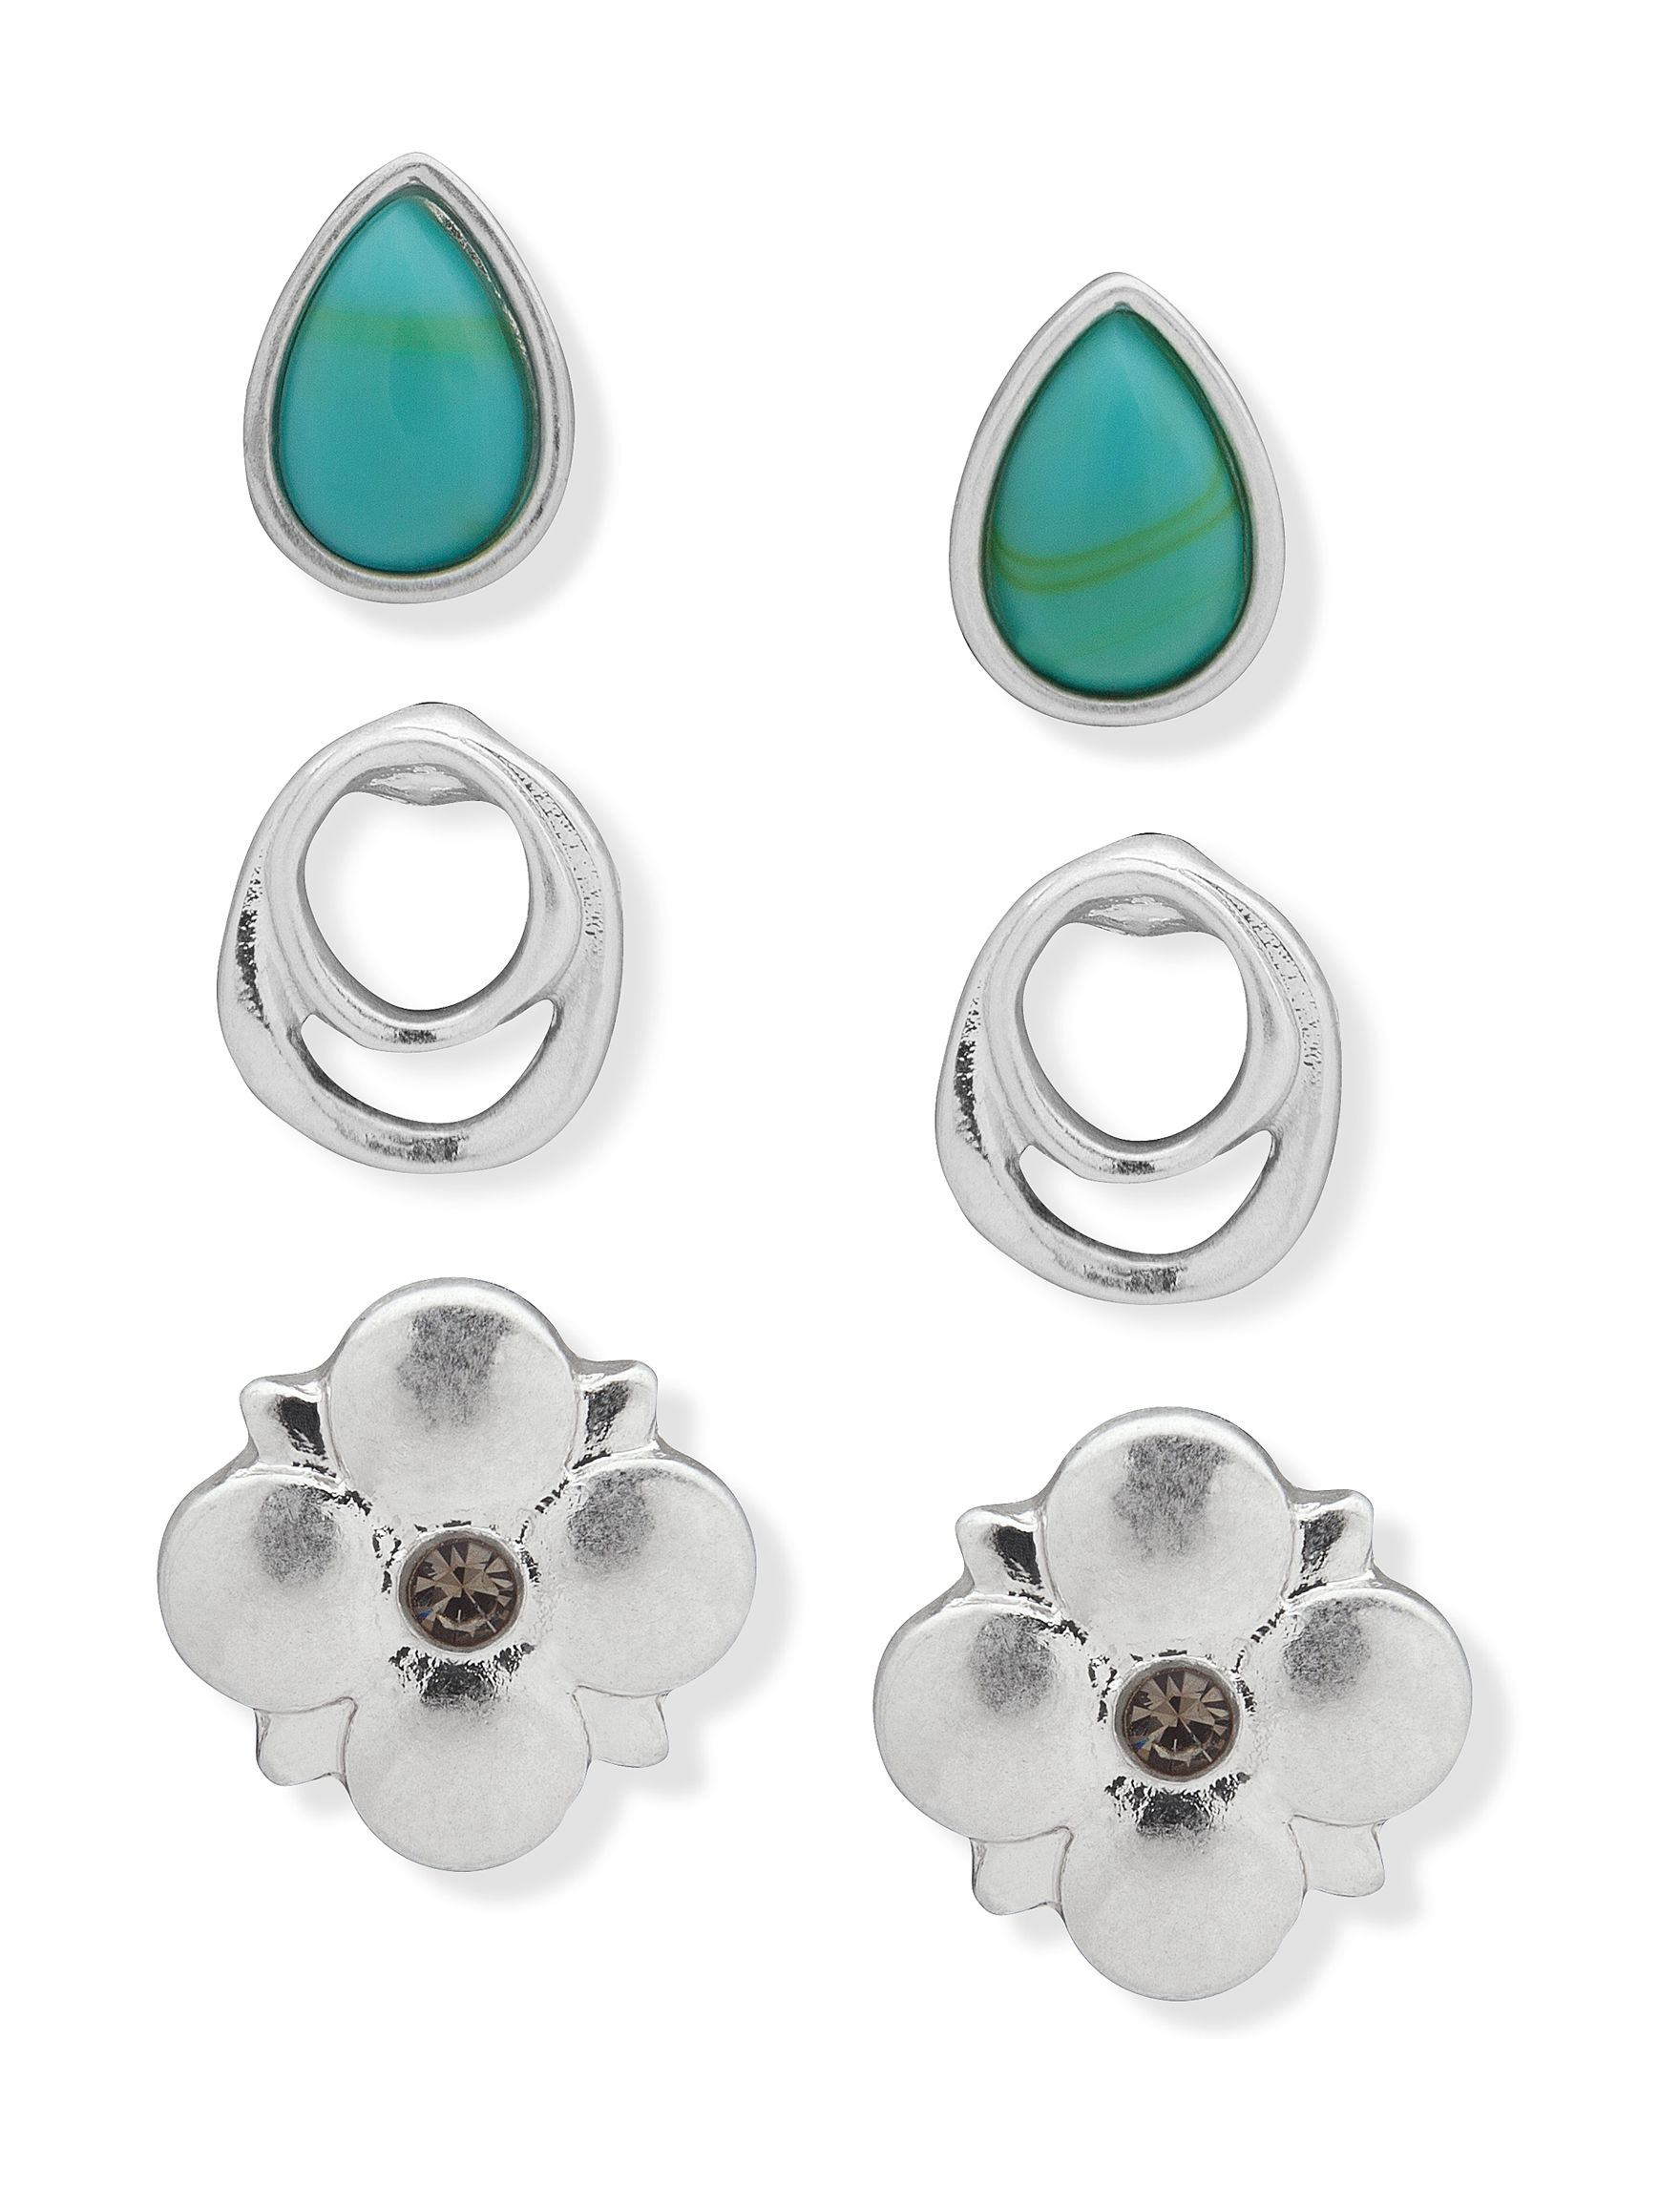 Chaps Turquoise / Silver Fashion Watches Studs Earrings Fashion Jewelry